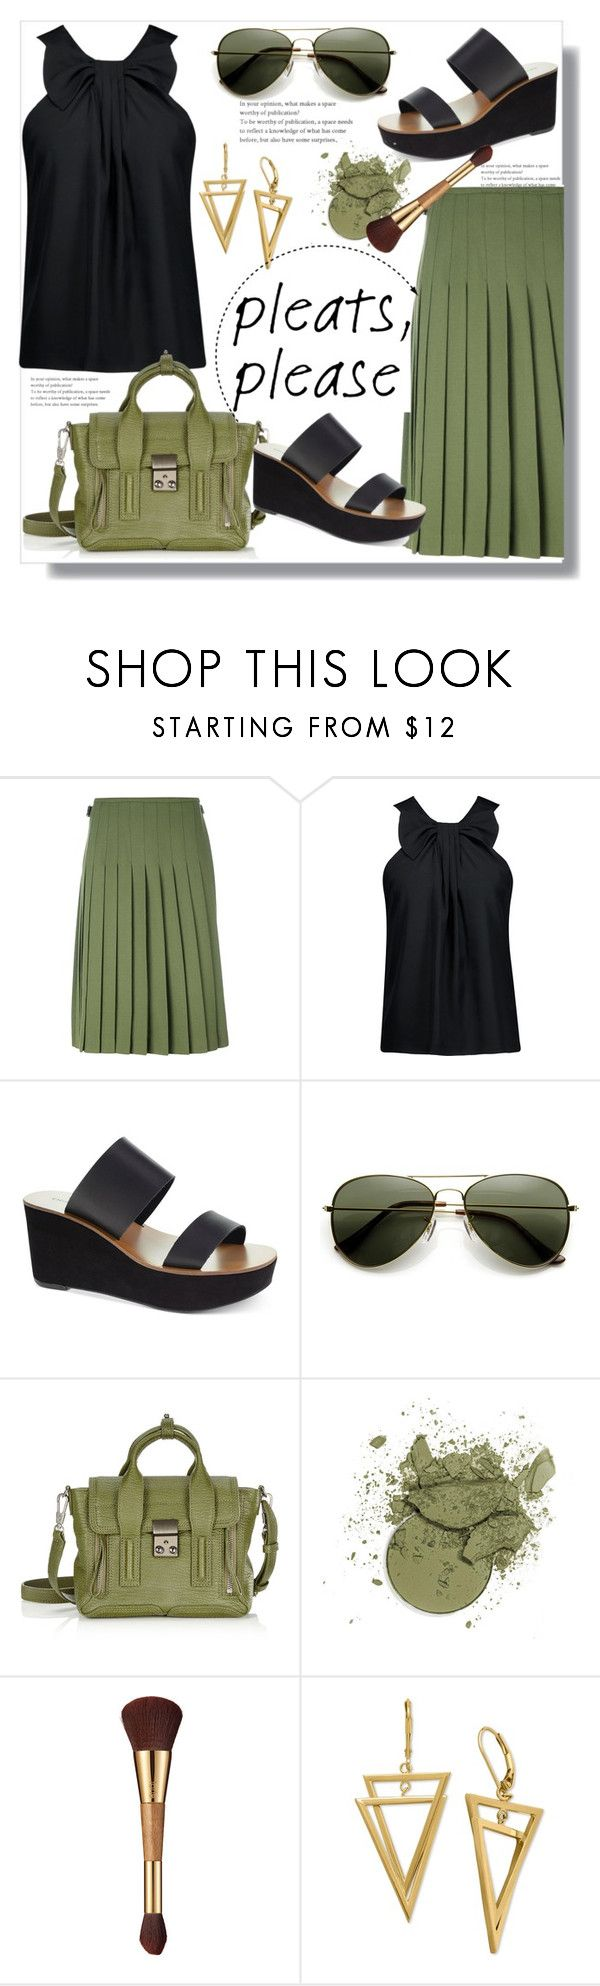 """Give Me Pleats, Please!"" by queenvirgo ❤ liked on Polyvore featuring Le Kilt, Raoul, Chinese Laundry, 3.1 Phillip Lim and tarte"